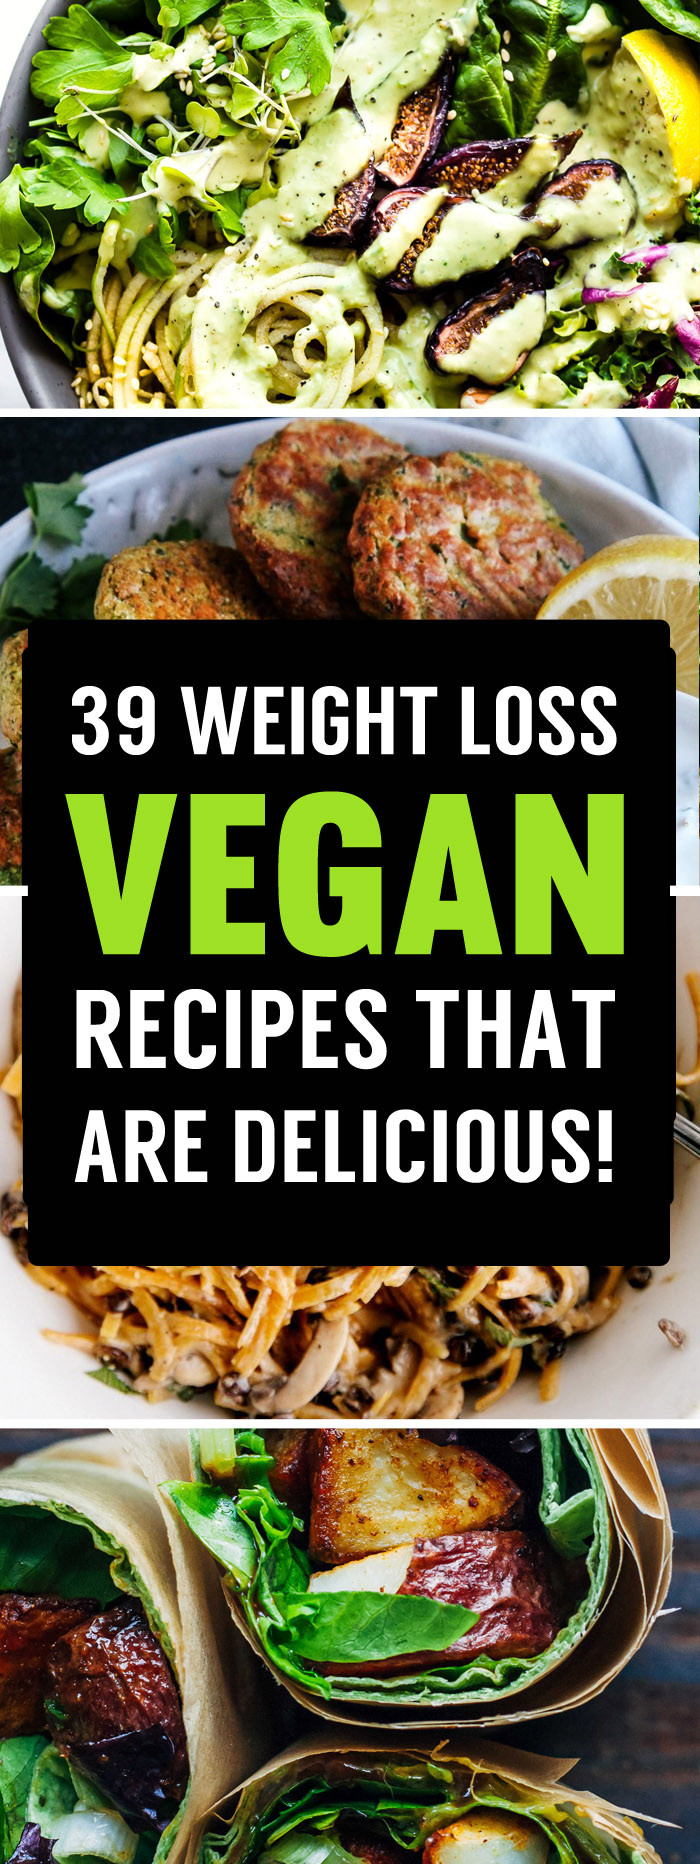 Vegan Recipes Healthy  39 Delicious Vegan Recipes That Are Perfect For Losing